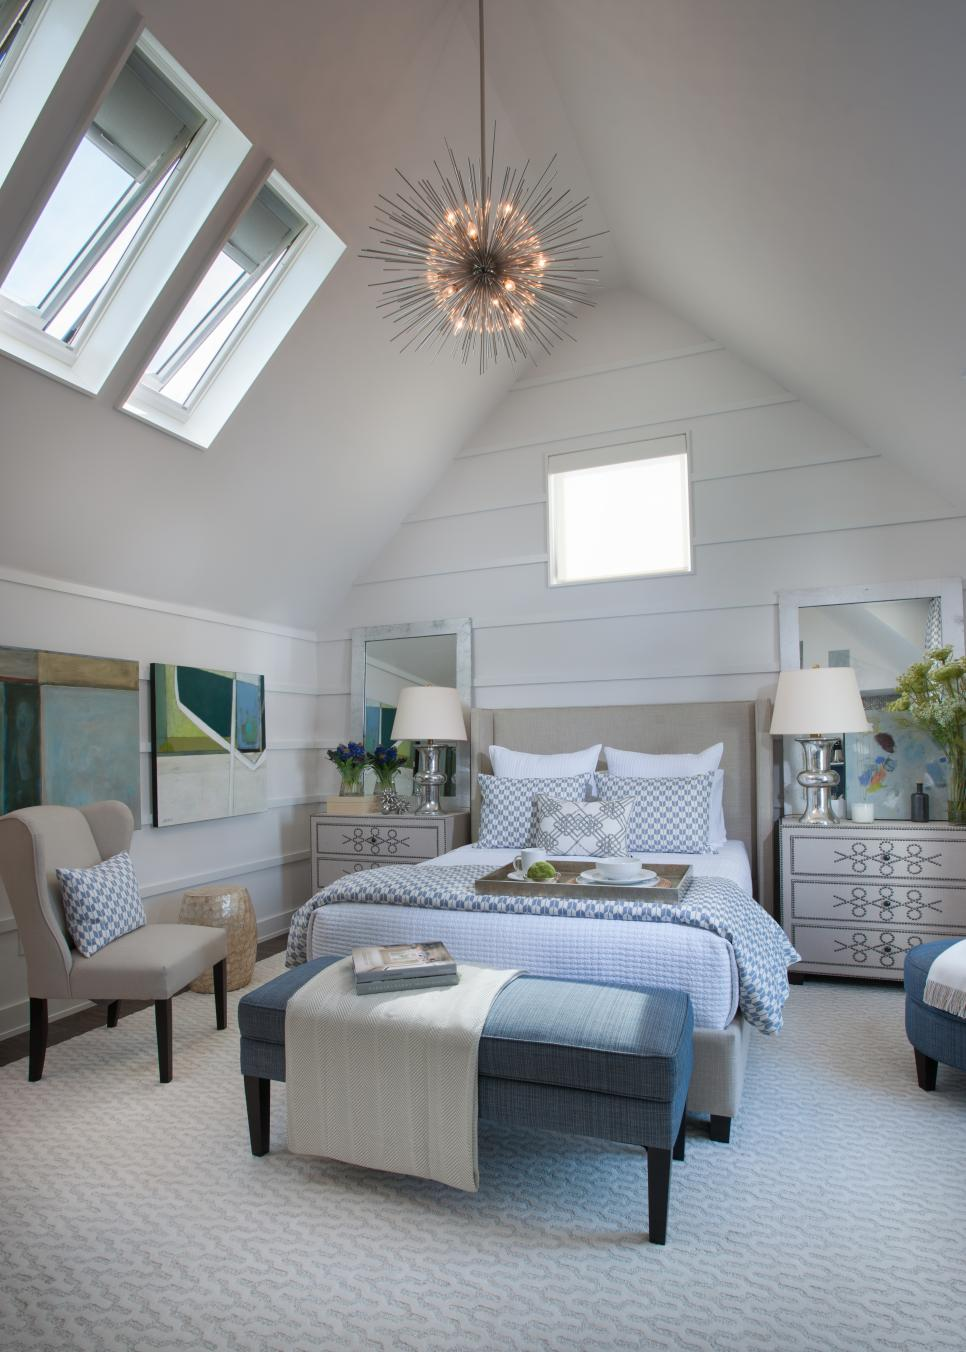 Master Bedroom Designs 2015 pictures of the hgtv smart home 2015 master bedroom | hgtv smart